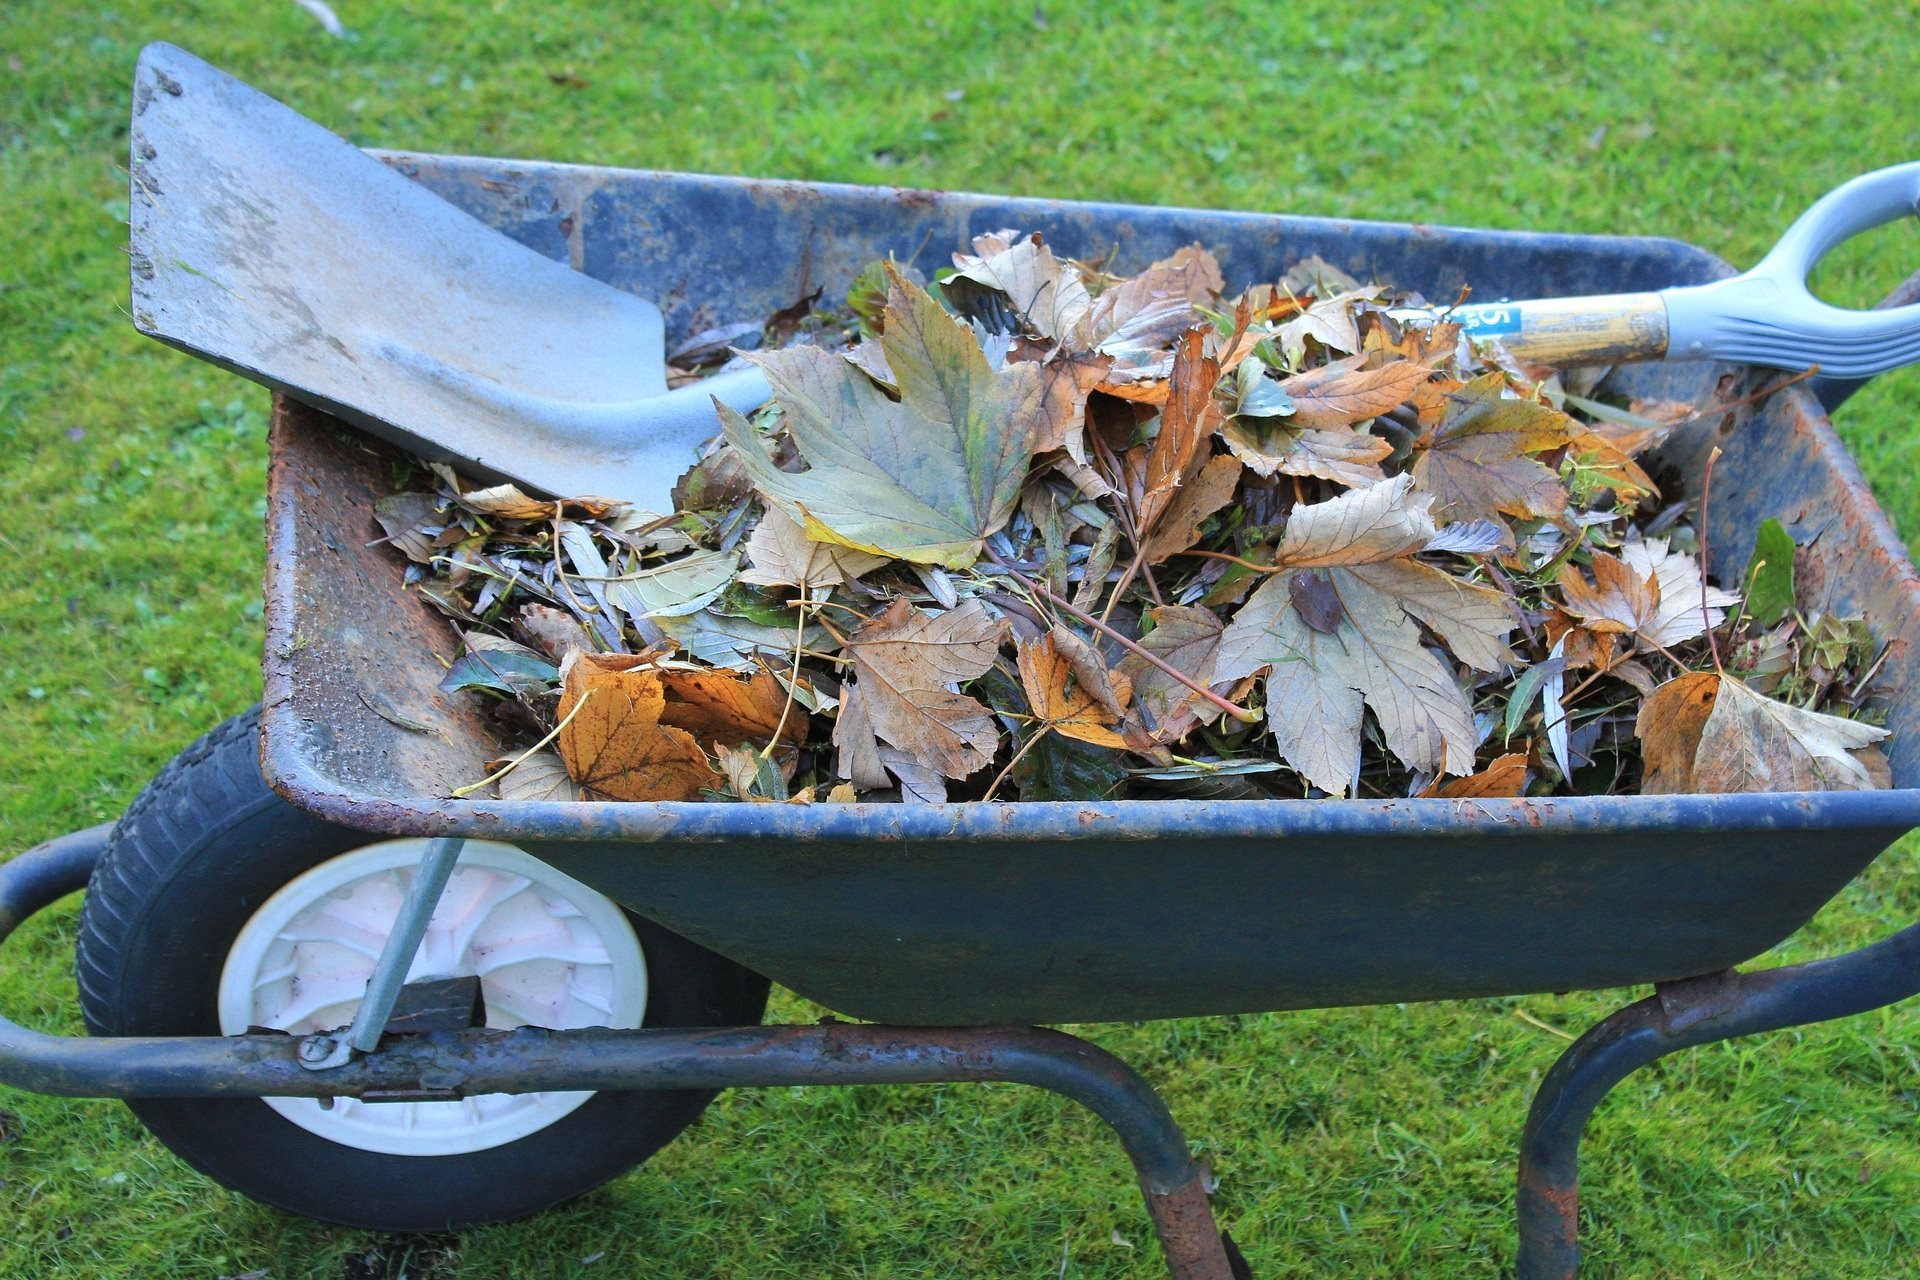 Garden waste collections to resume on 15 February